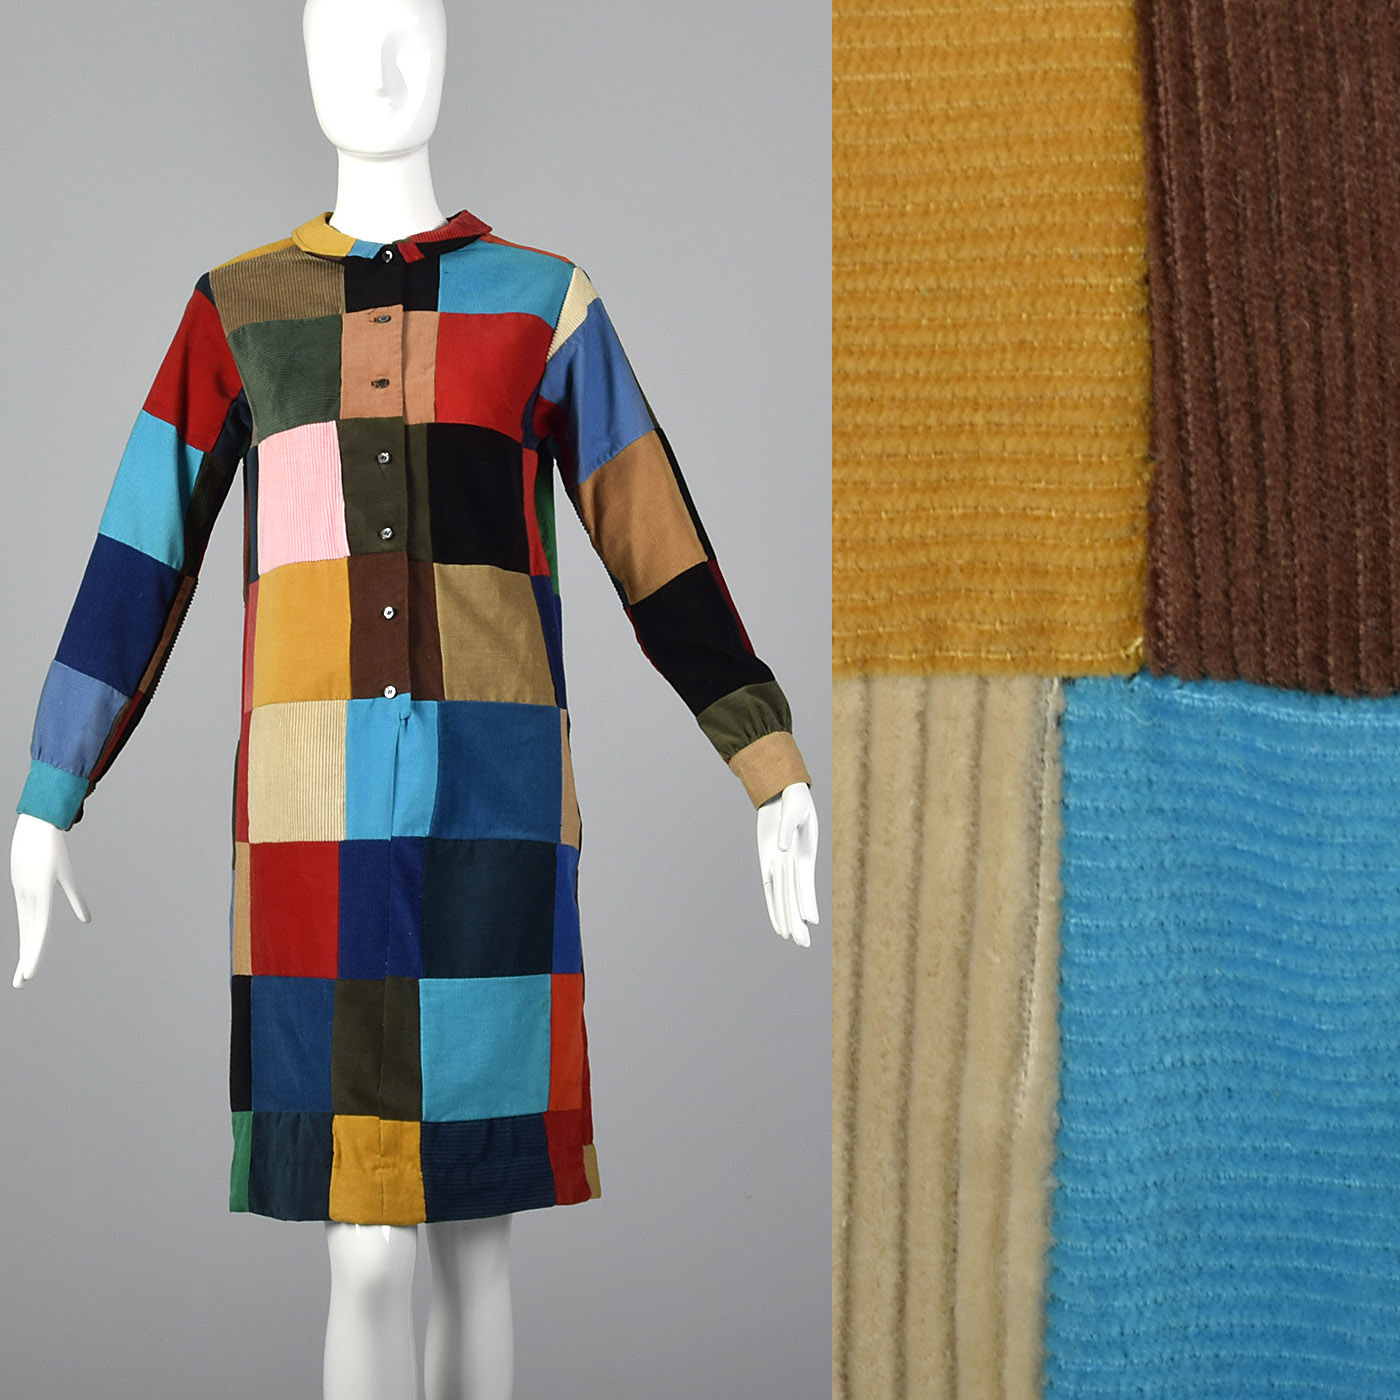 1960s Quilted Patchwork Corduroy Dress